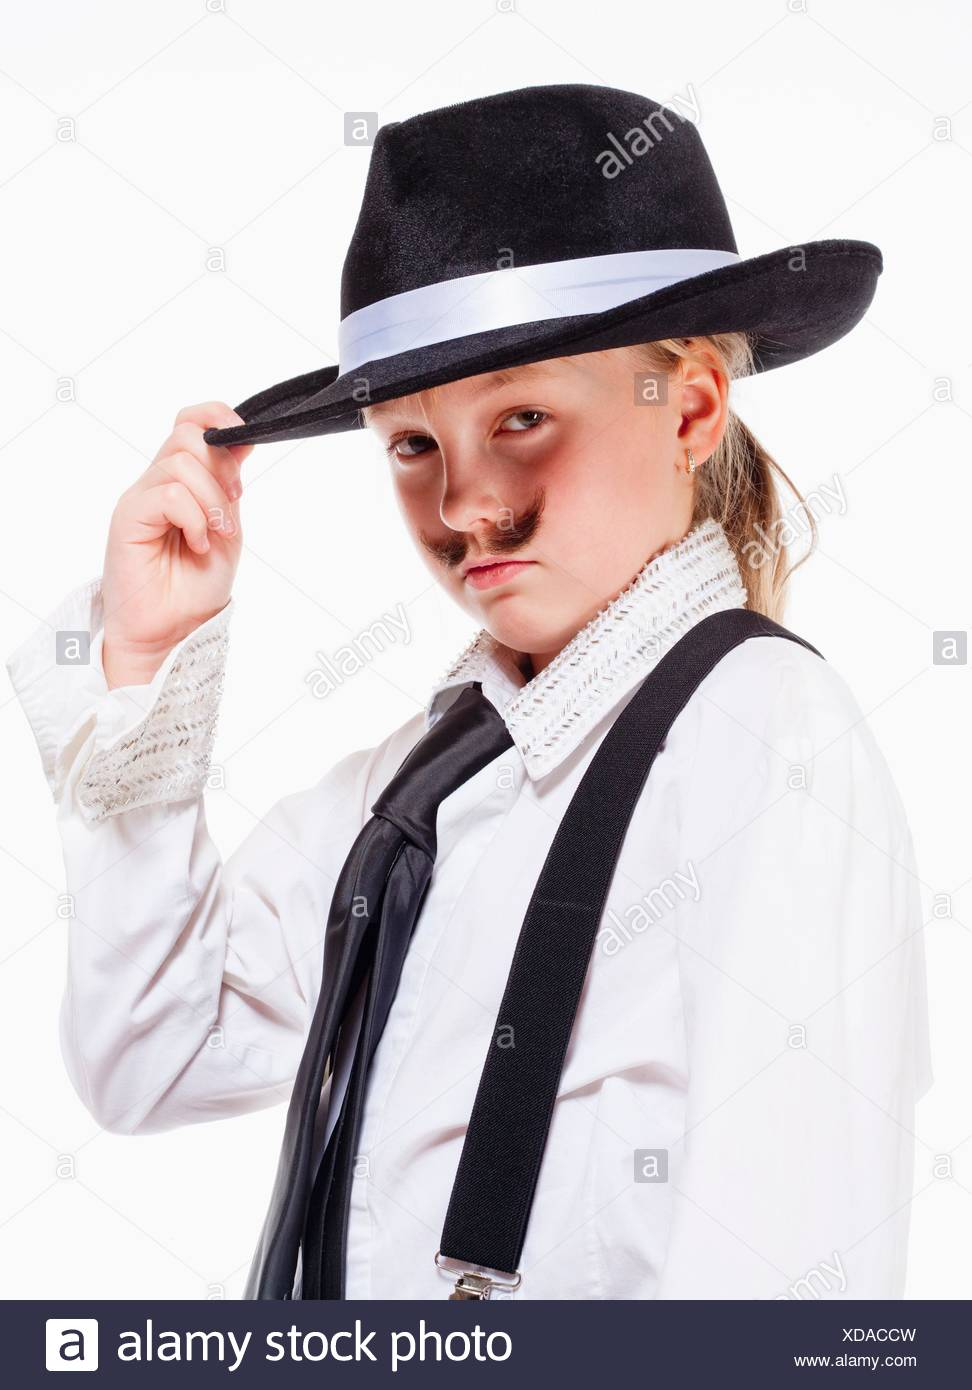 Portrait of a Little Girl with Hat Posing as a Gangster. - Stock Image